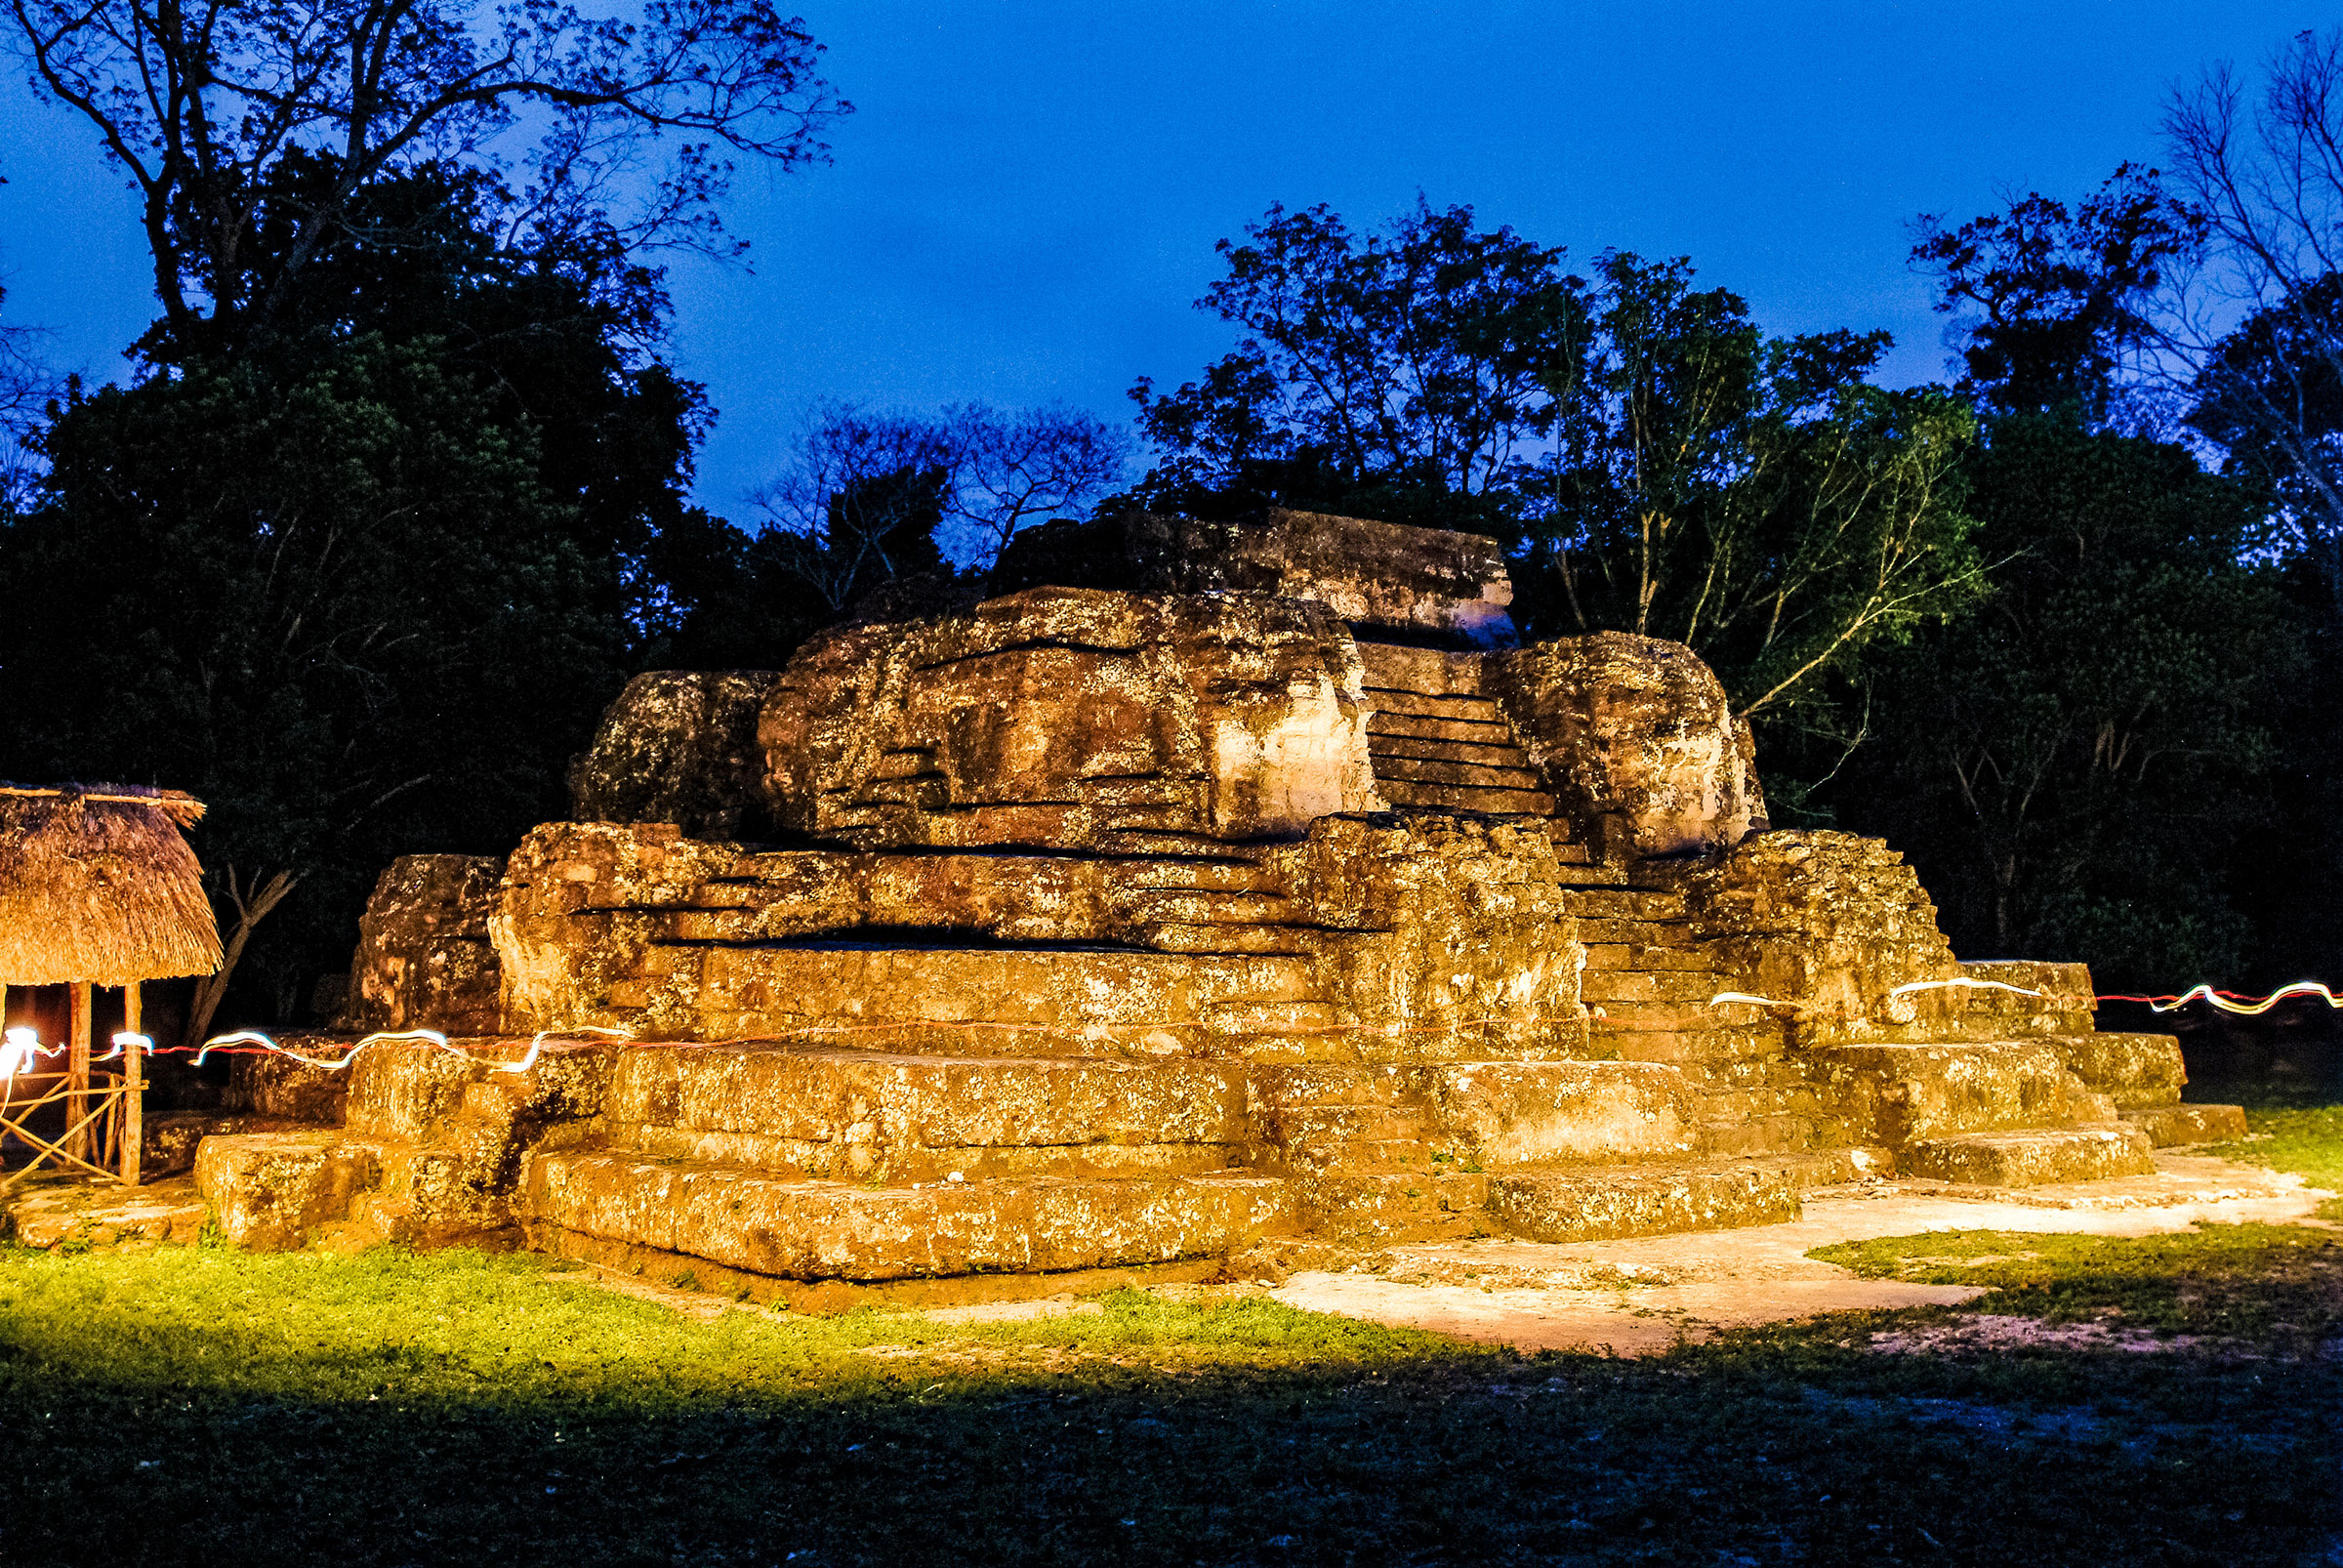 The Astronomical Observatory, Guatemala Uaxactun. Realy Easy Star/Alamy